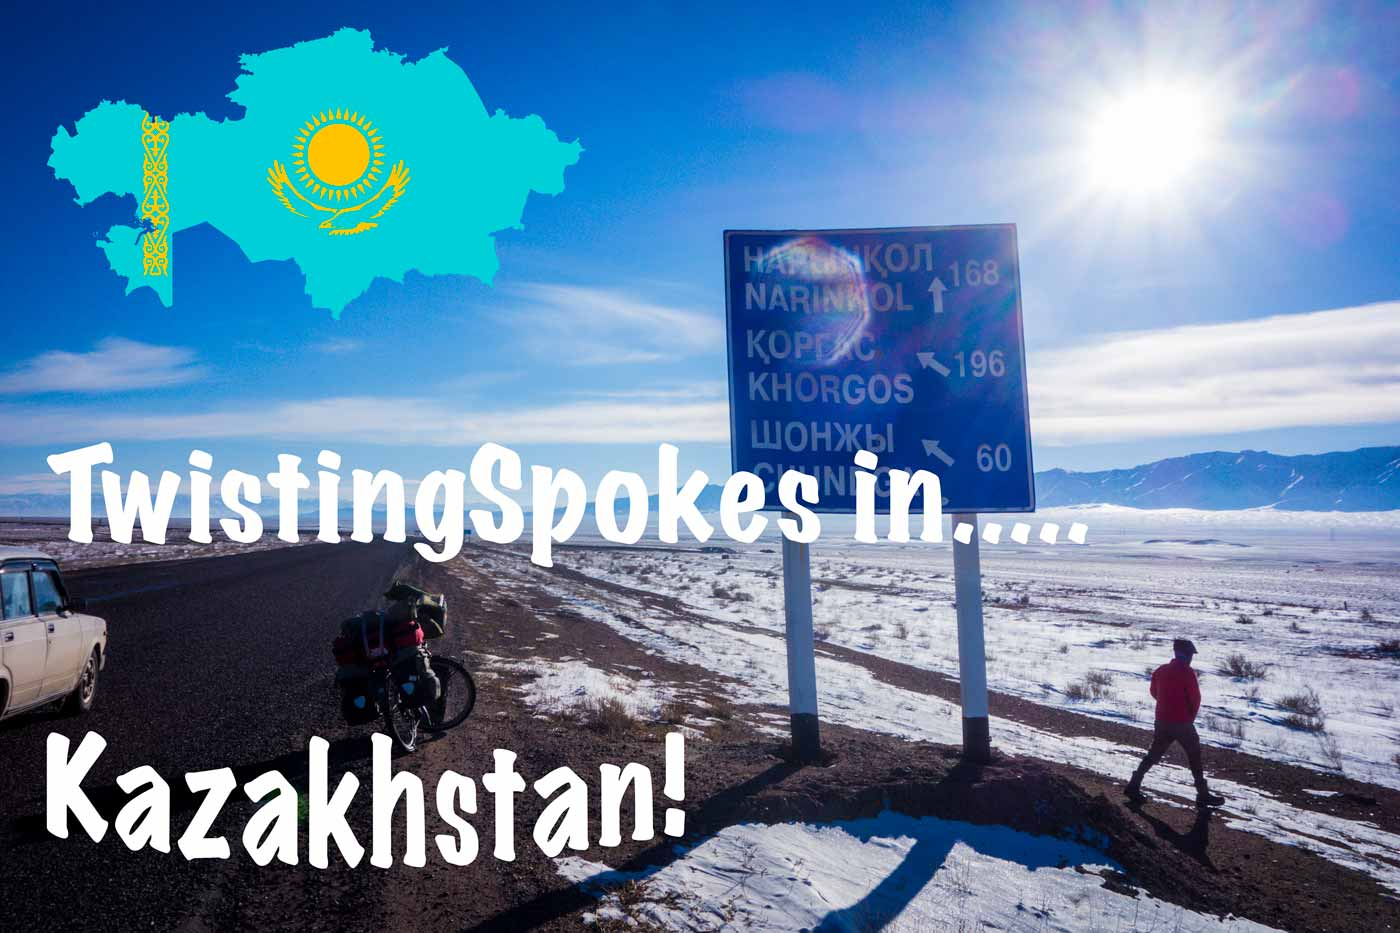 TwistingSpokes in Kazakhstan